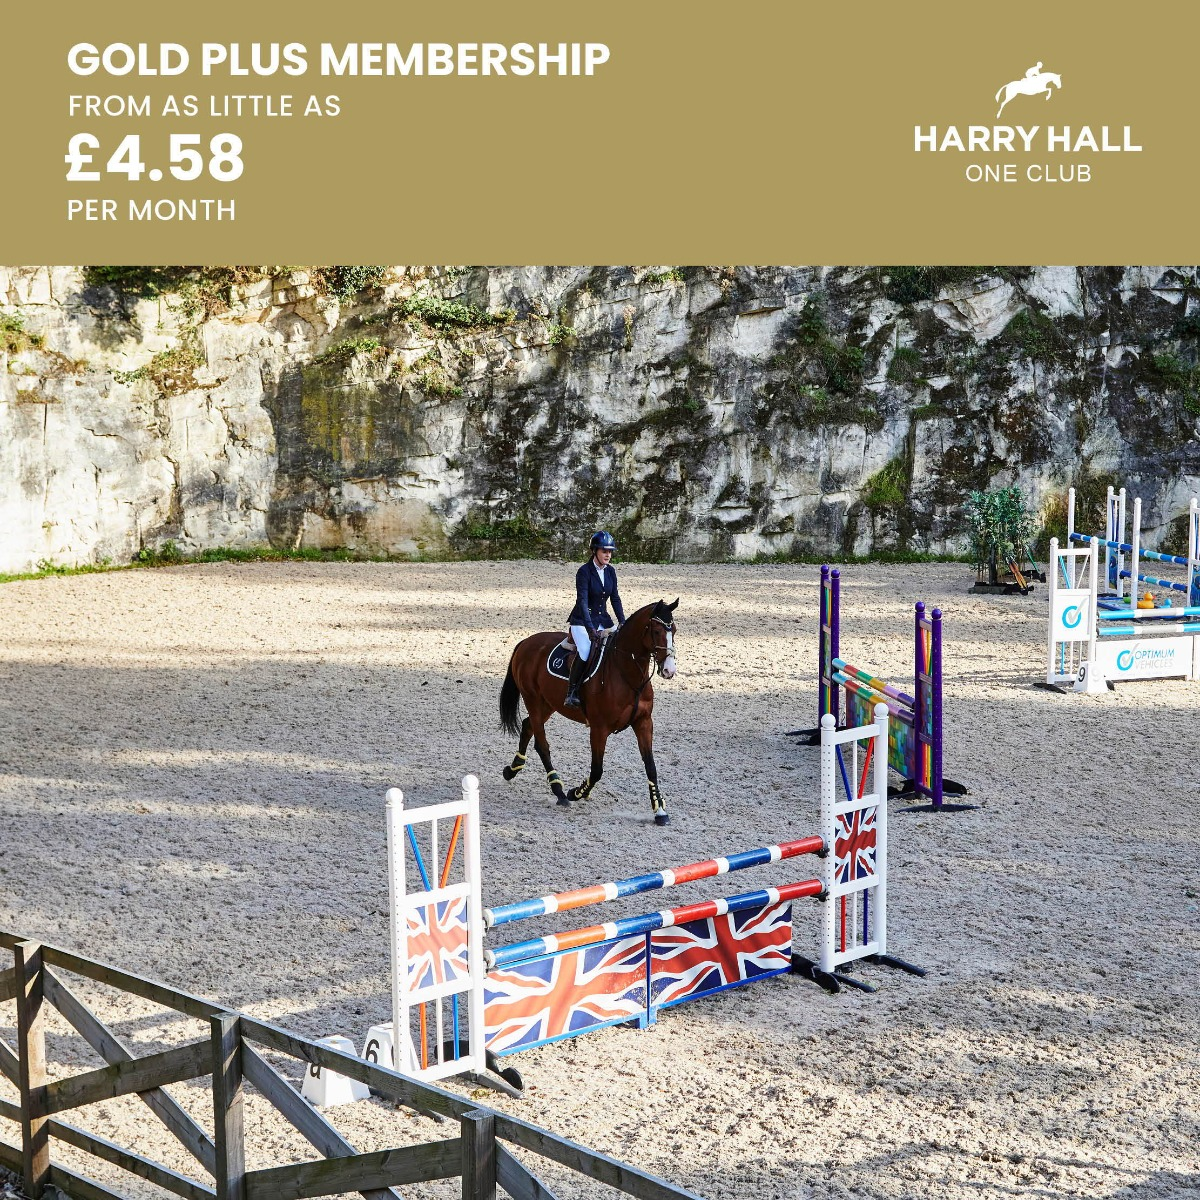 Harry Hall One Club Gold Plus Event Membership